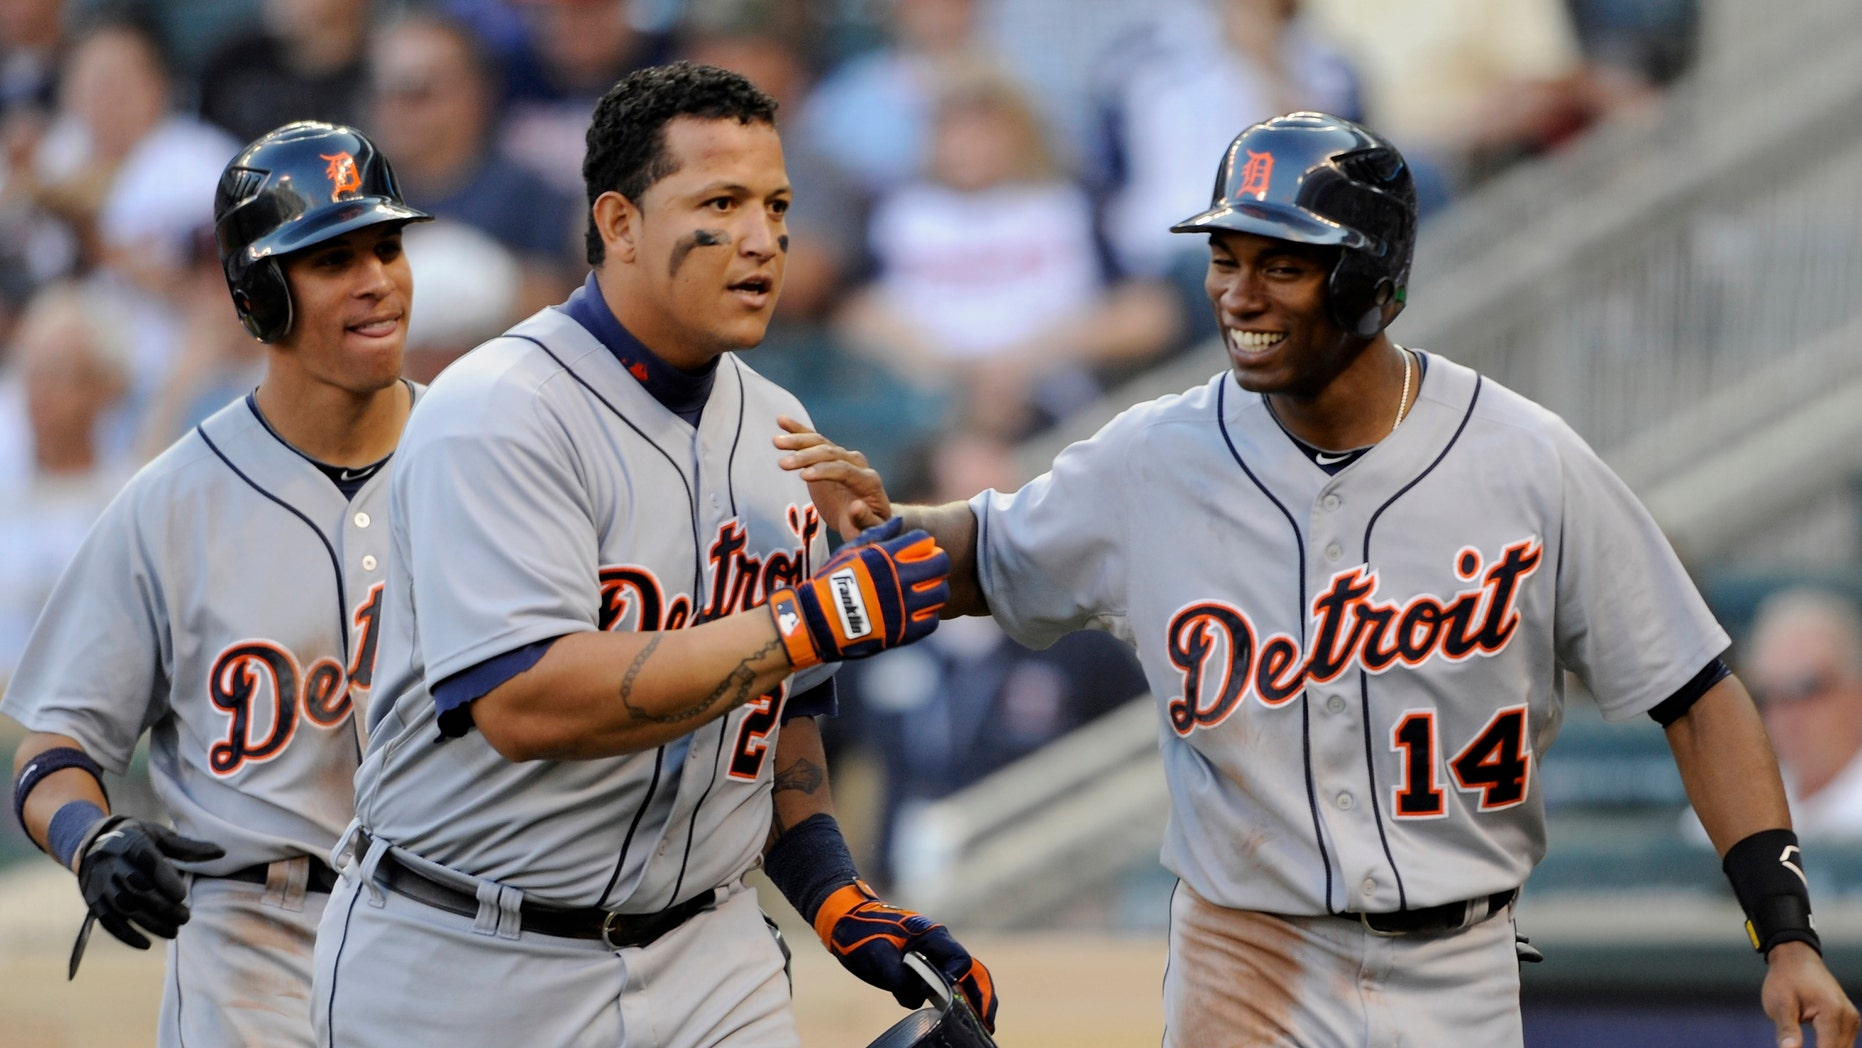 MINNEAPOLIS, MN - SEPTEMBER 29: Quintin Berry #52 and Austin Jackson #14 of the Detroit Tigers congratulate Miguel Cabrera #24 on a three run home run against the Minnesota Twins during the eighth inning of the game on September 29, 2012 at Target Field in Minneapolis, Minnesota. The Tigers defeated the Twins 6-4. (Photo by Hannah Foslien/Getty Images)